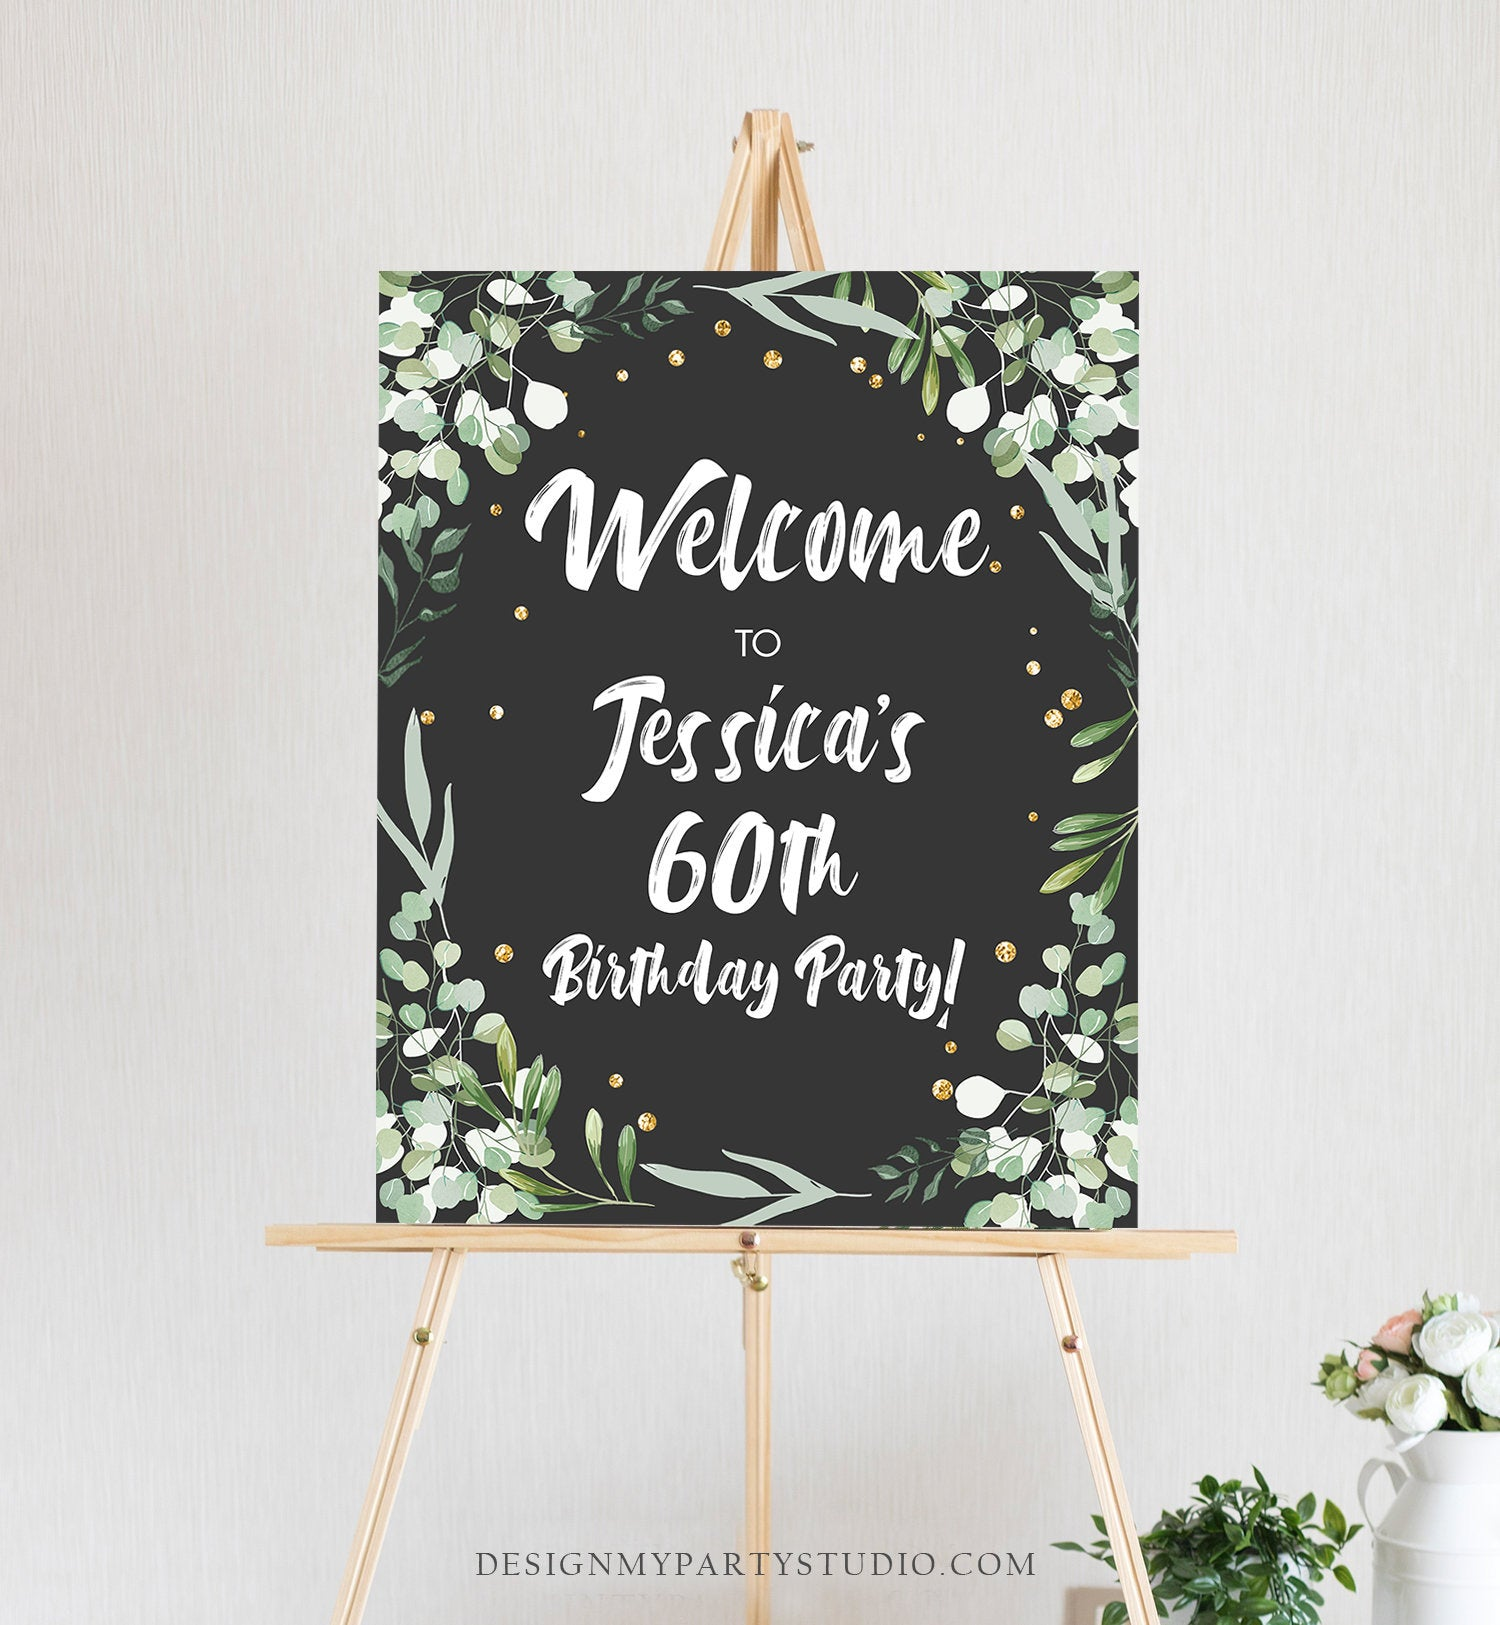 Editable Greenery Birthday Welcome Sign Adult ANY AGE 60th Birthday Party Rustic Bridal Shower Wedding Gold Corjl Template Printable 0253